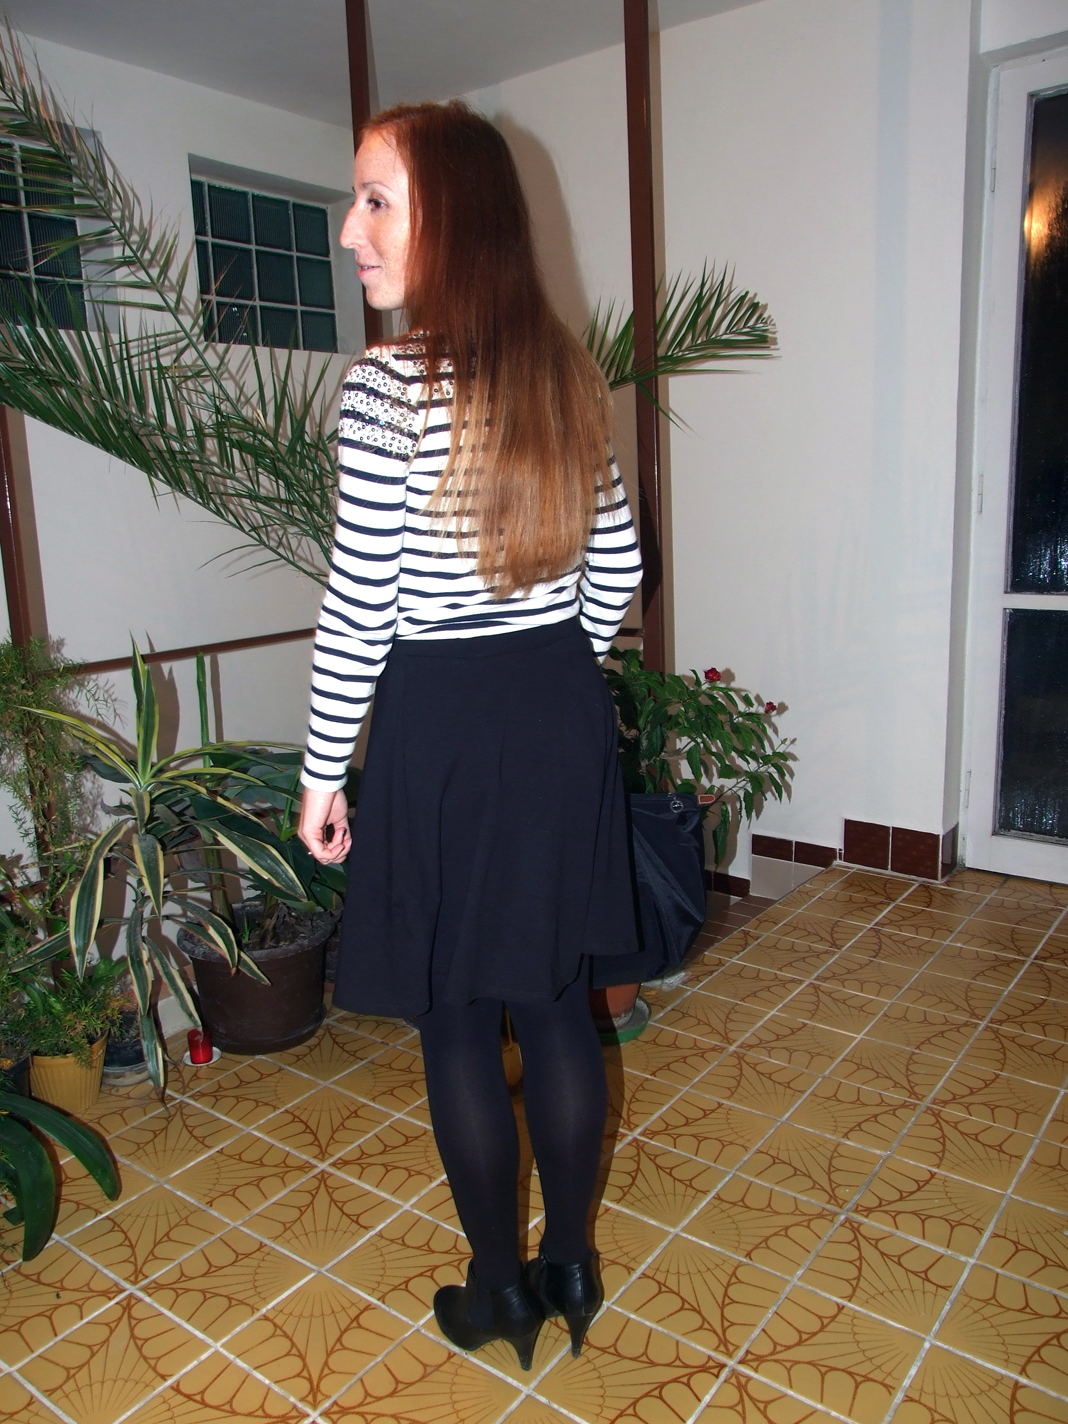 Pleated skirt pantyhose girl